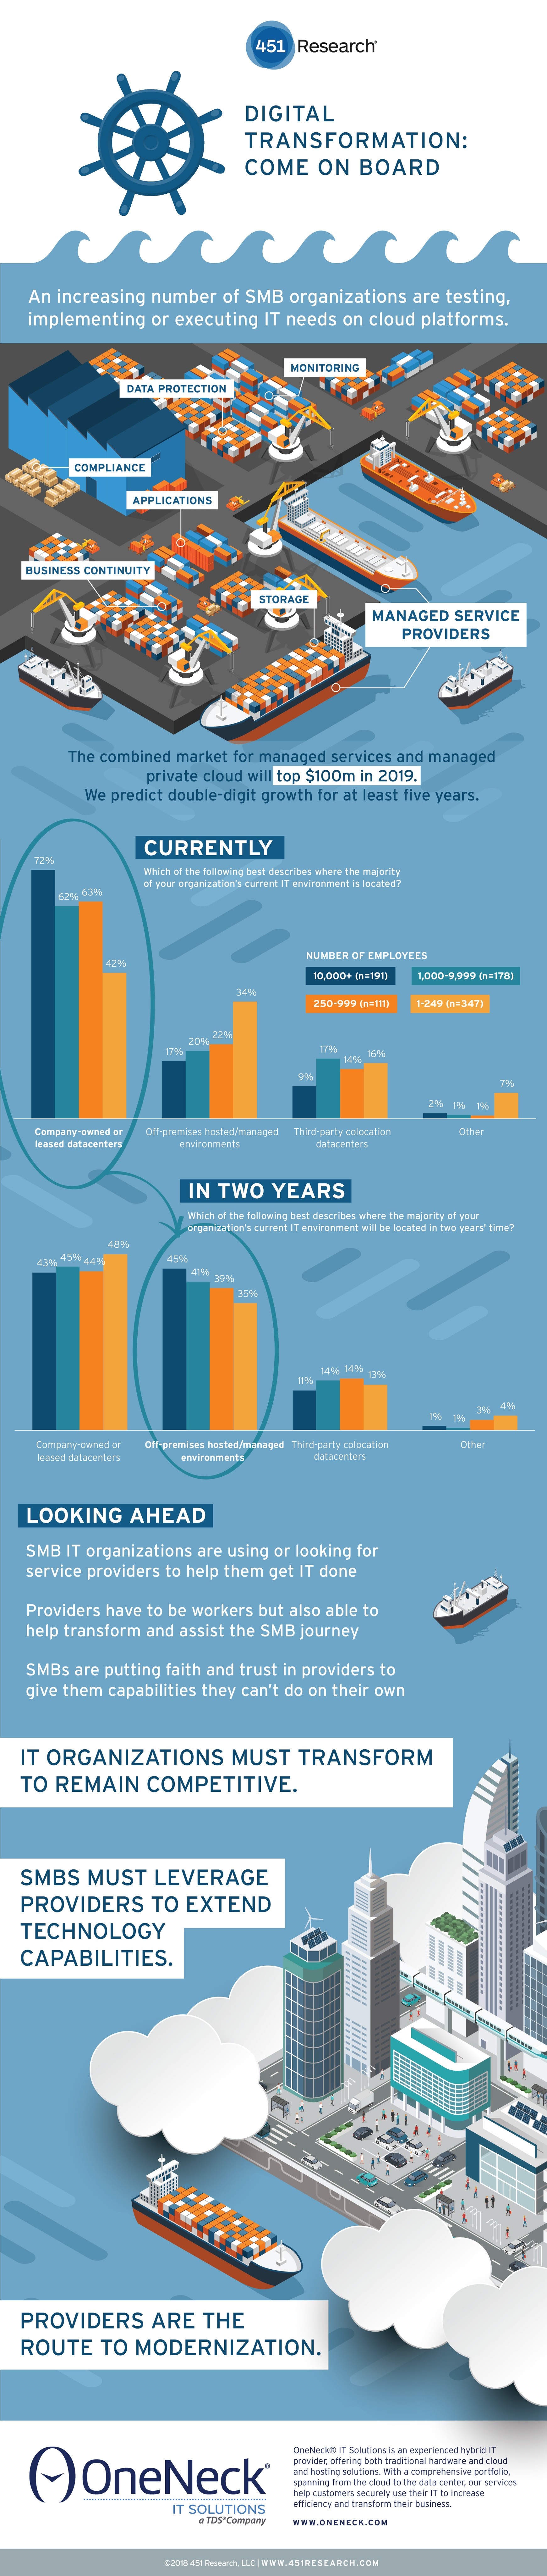 451_Infographic_On-Board_FINAL